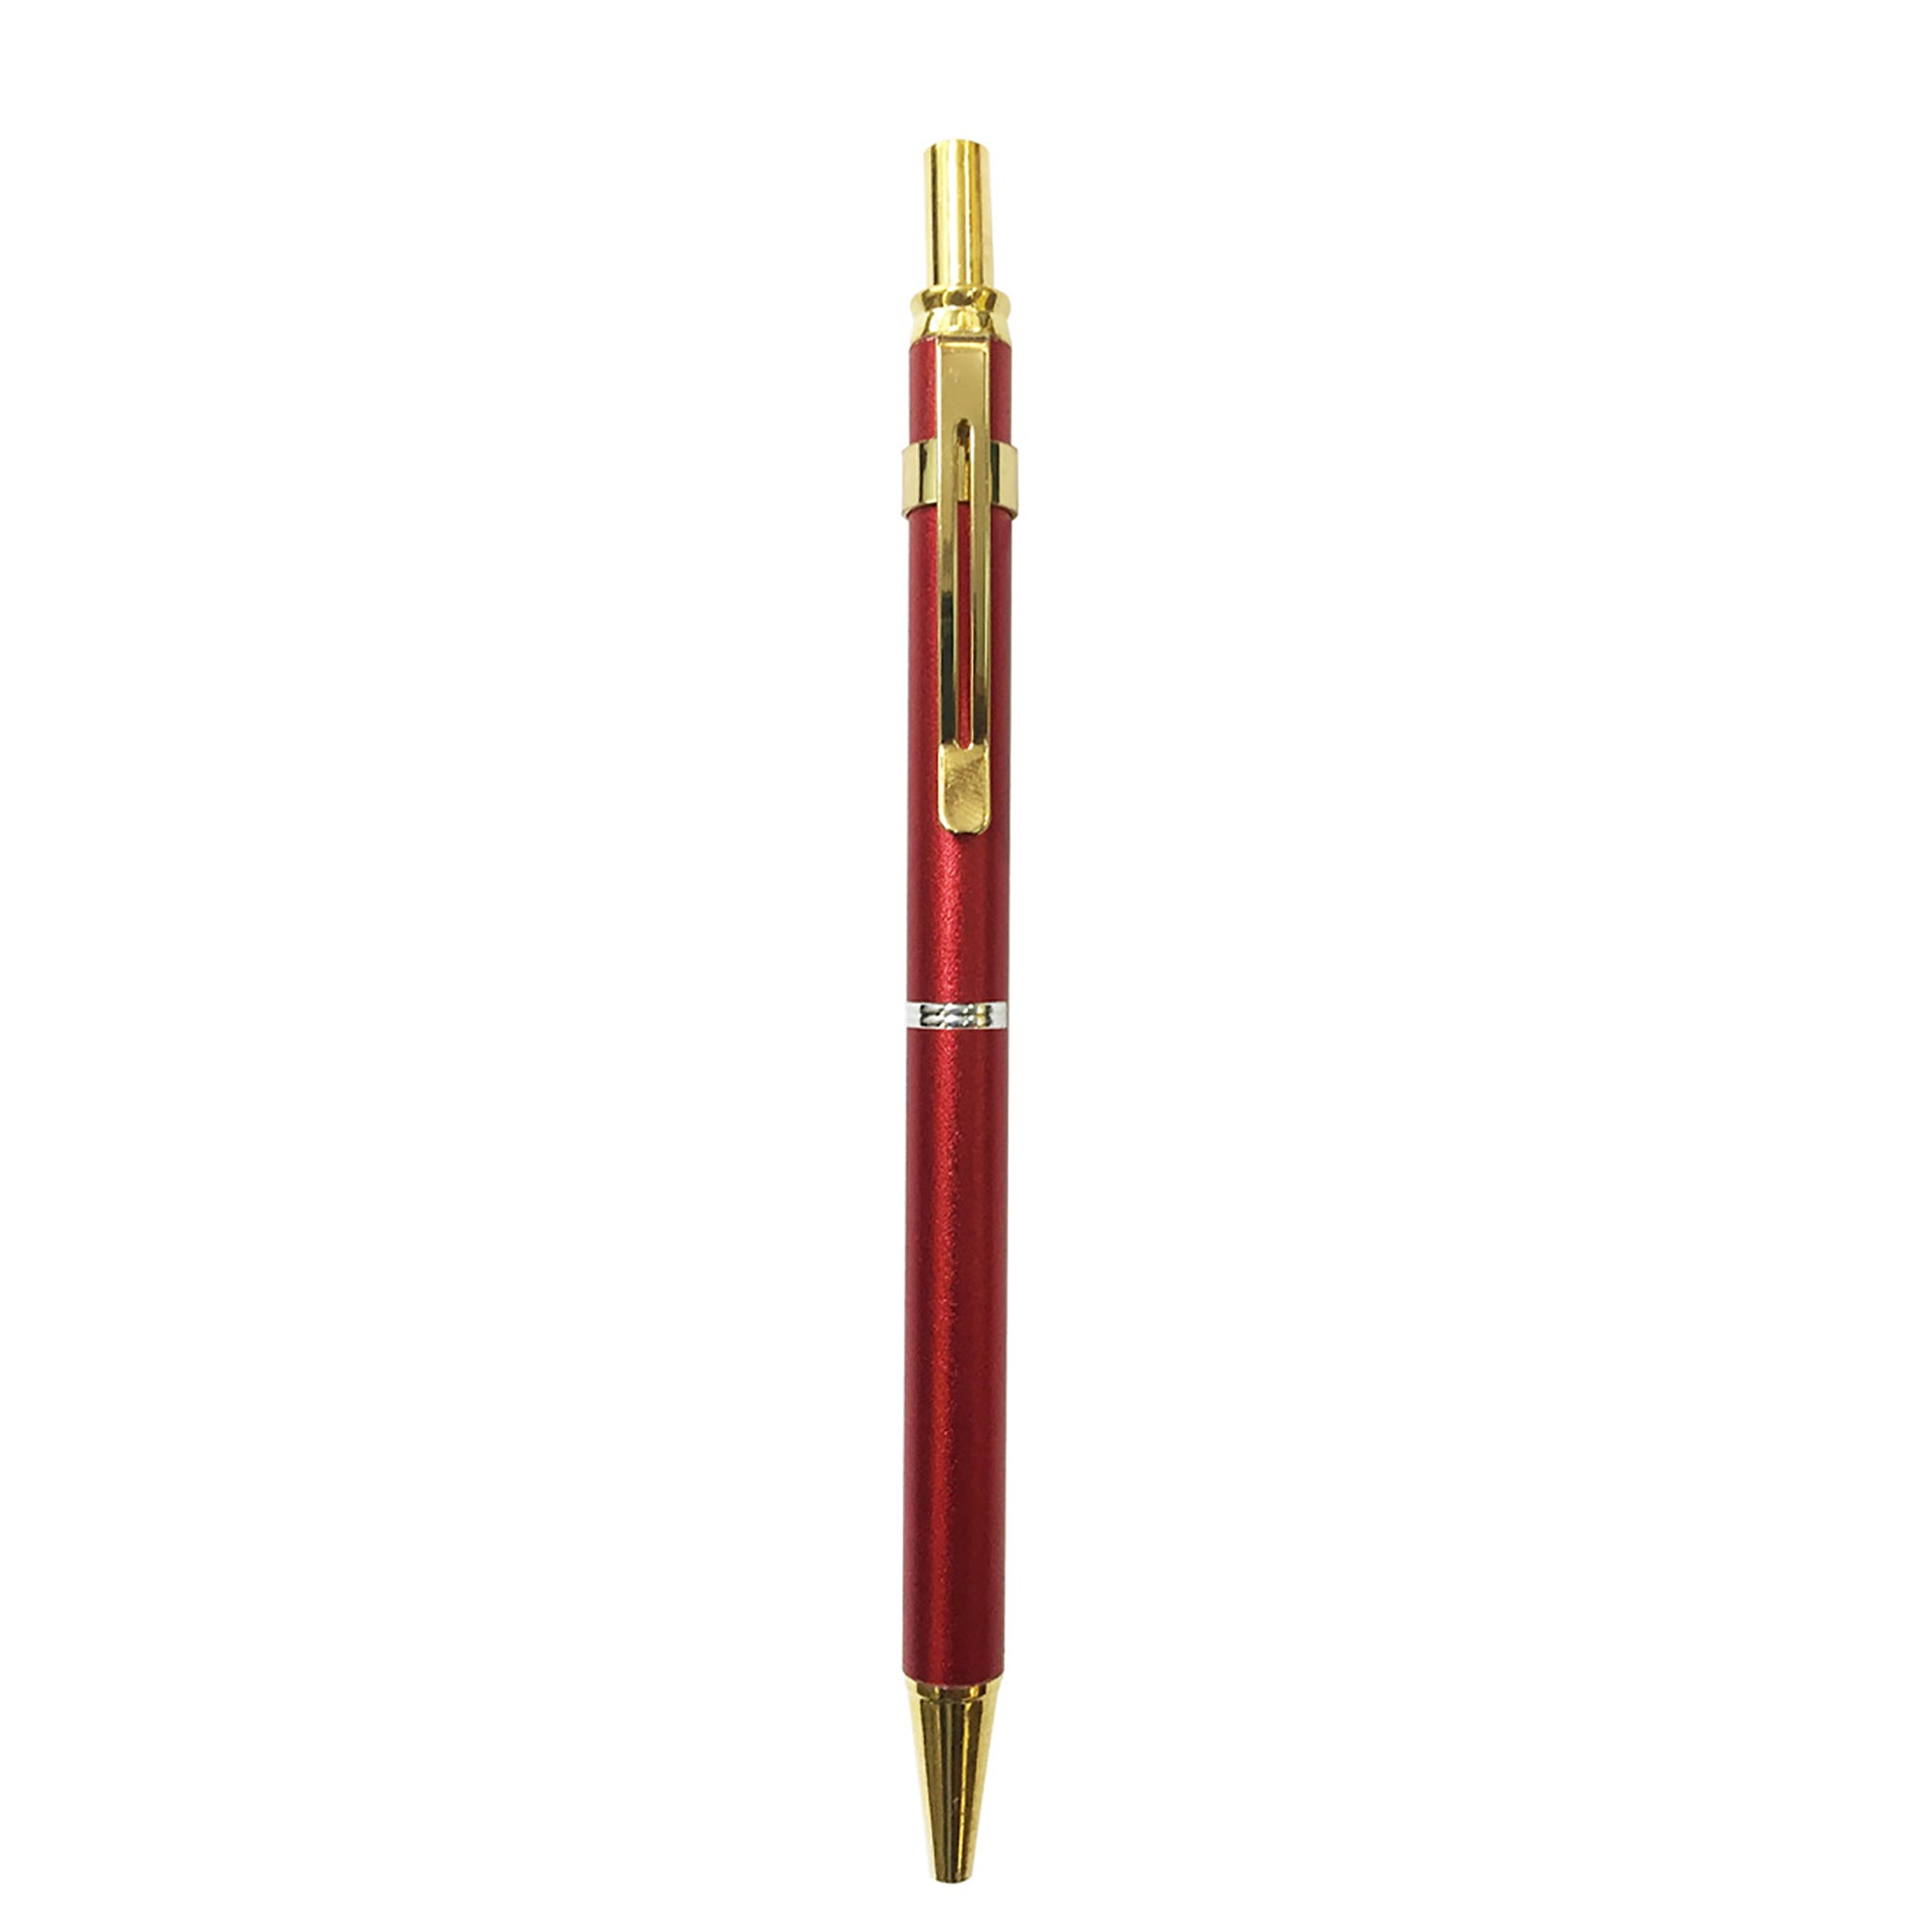 Metallic Mechanical Pencil - Red